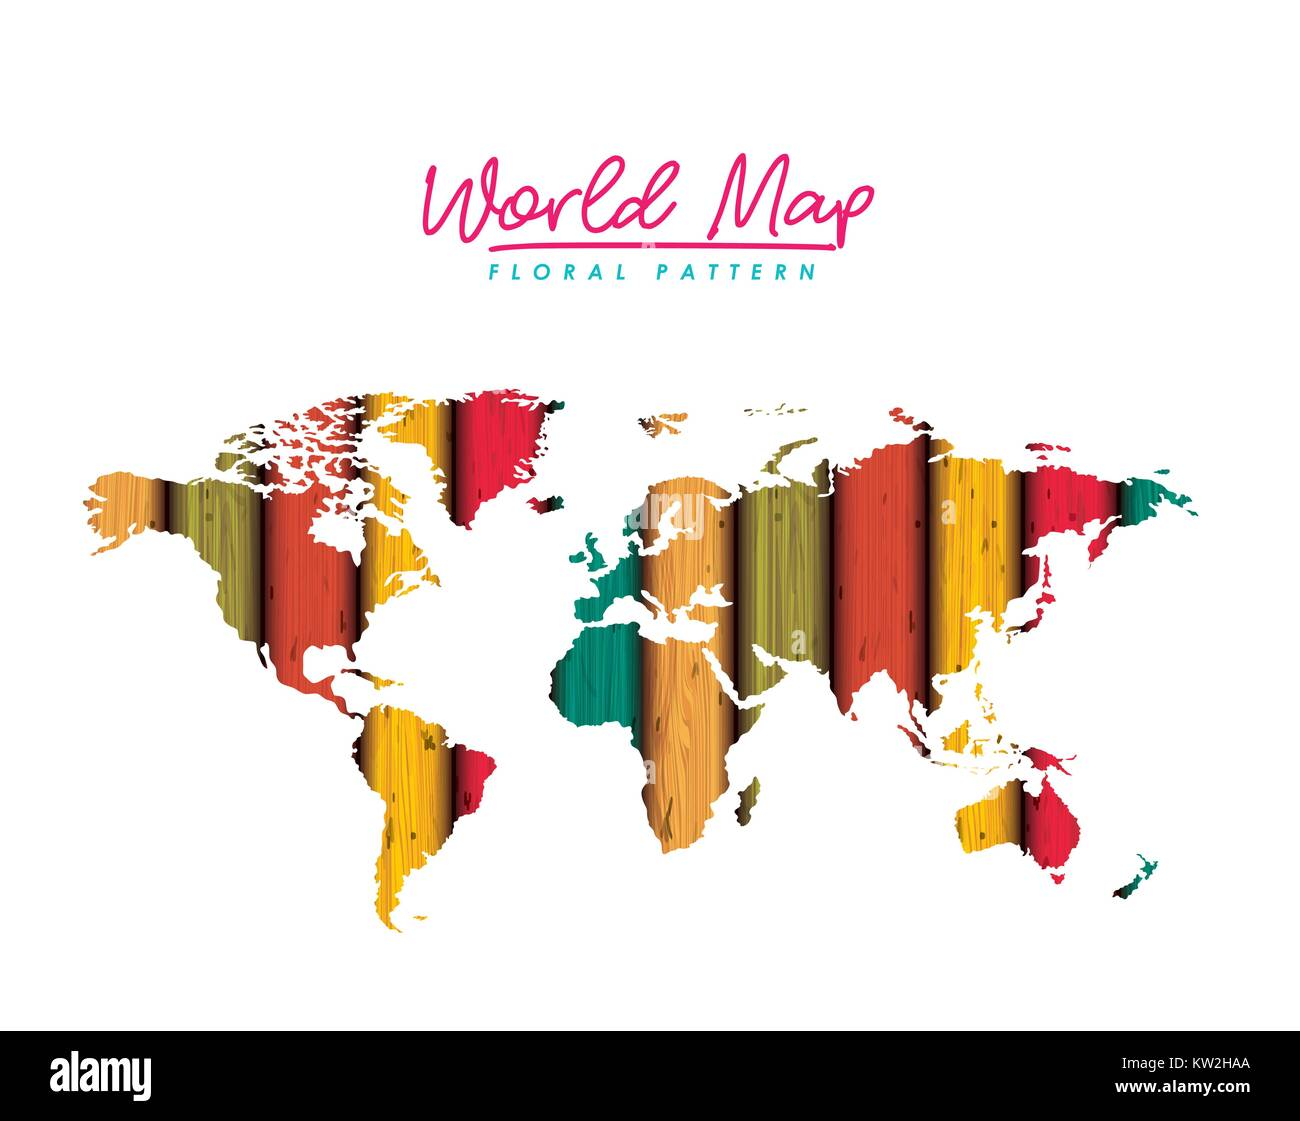 Internet map globe world lines stock vector images alamy world map floral pattern with colored lines on white background stock vector gumiabroncs Gallery